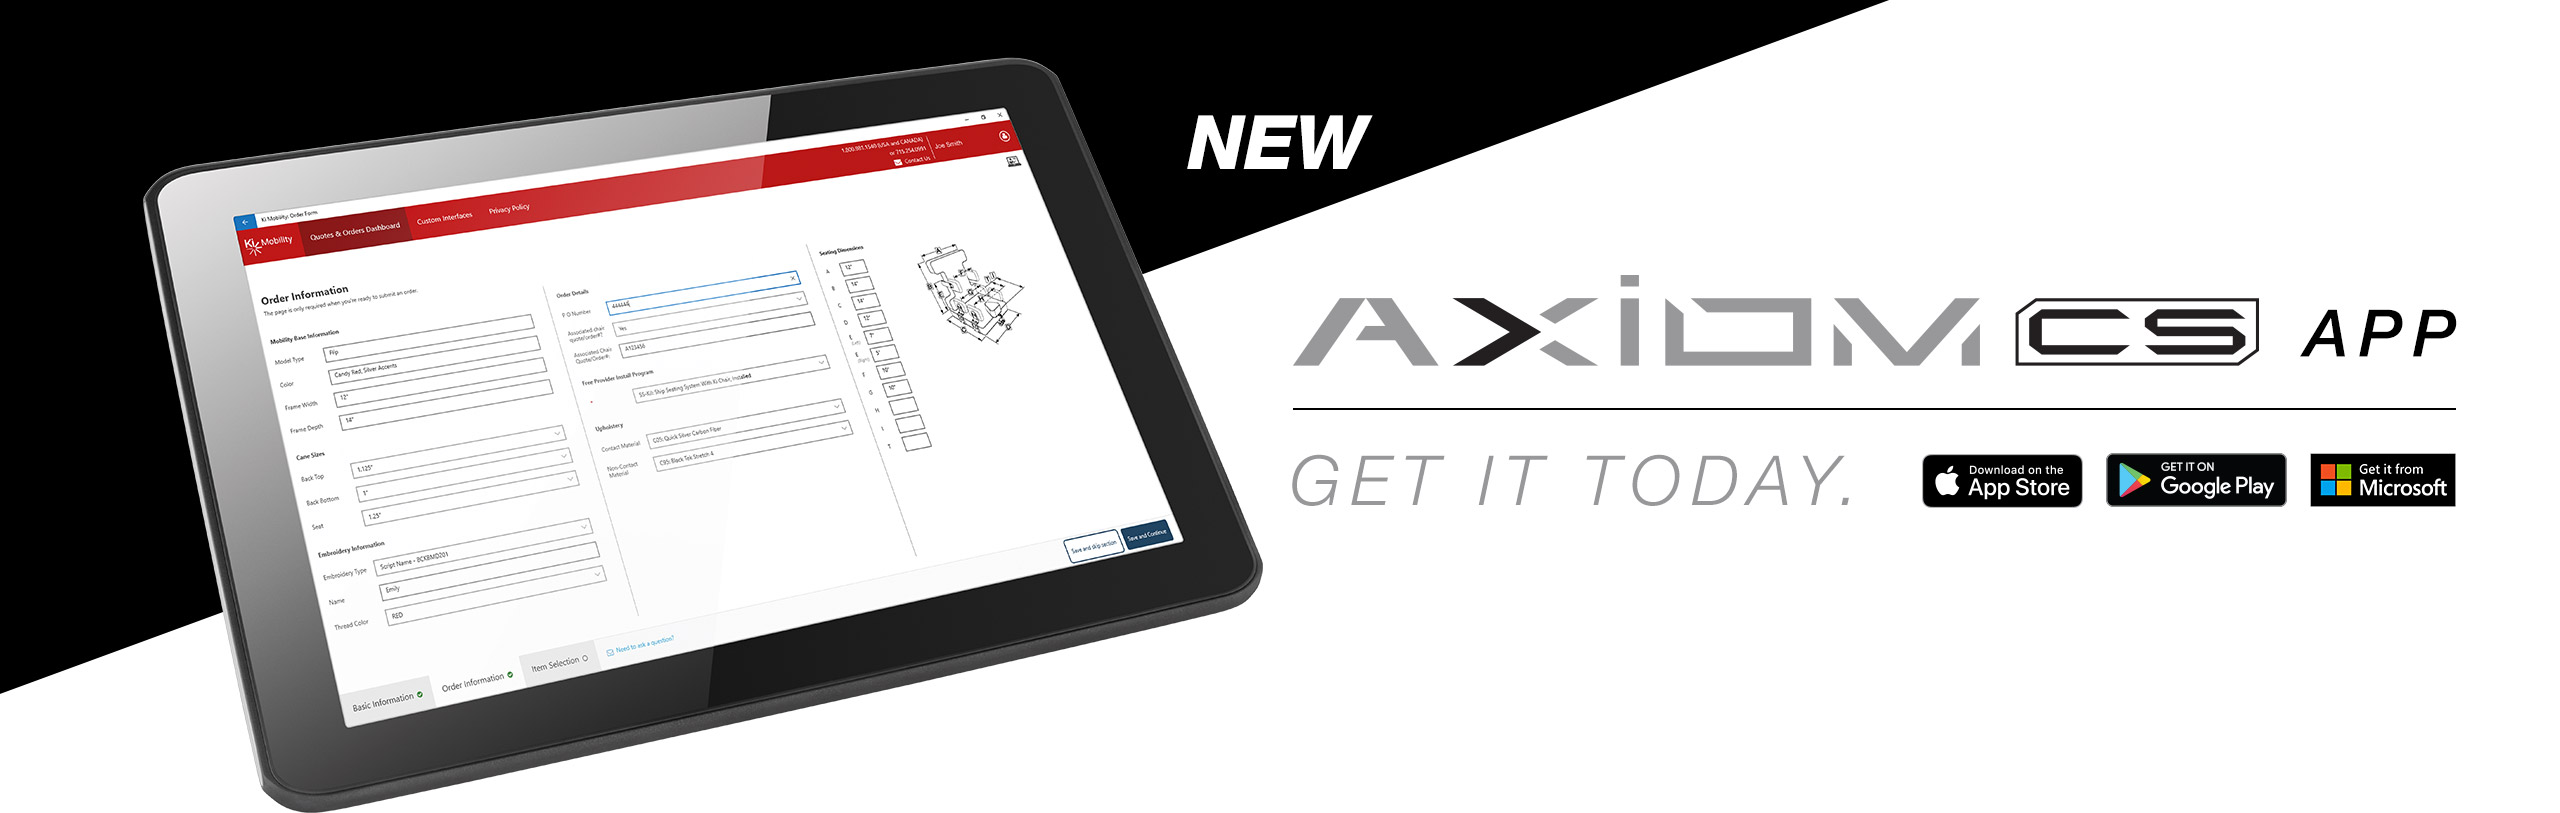 Introducing the NEW Axiom CS App!